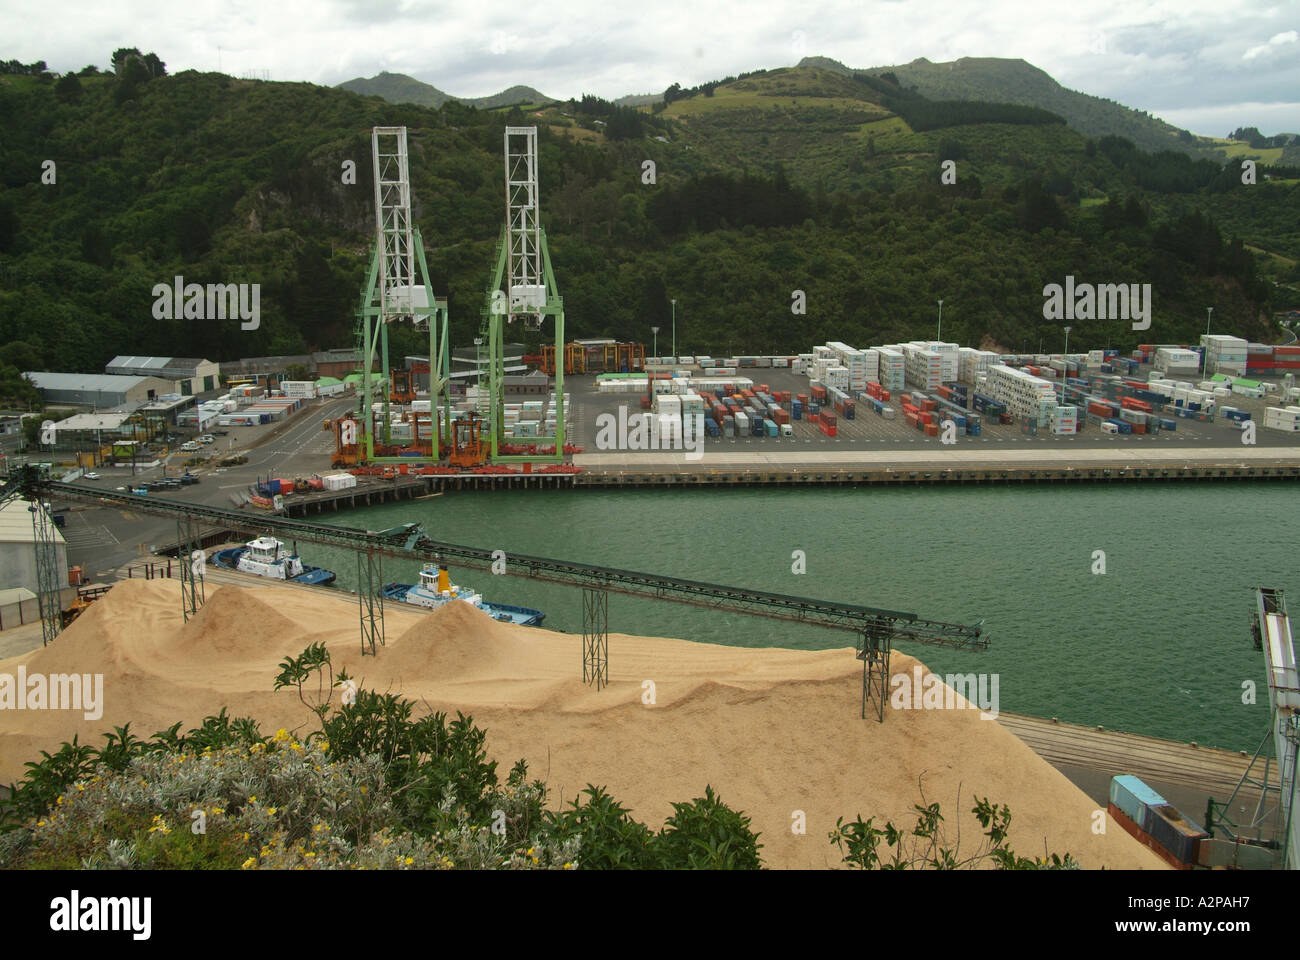 Woodchip pile and shipping containers on Otago docks, New Zealand - Stock Image